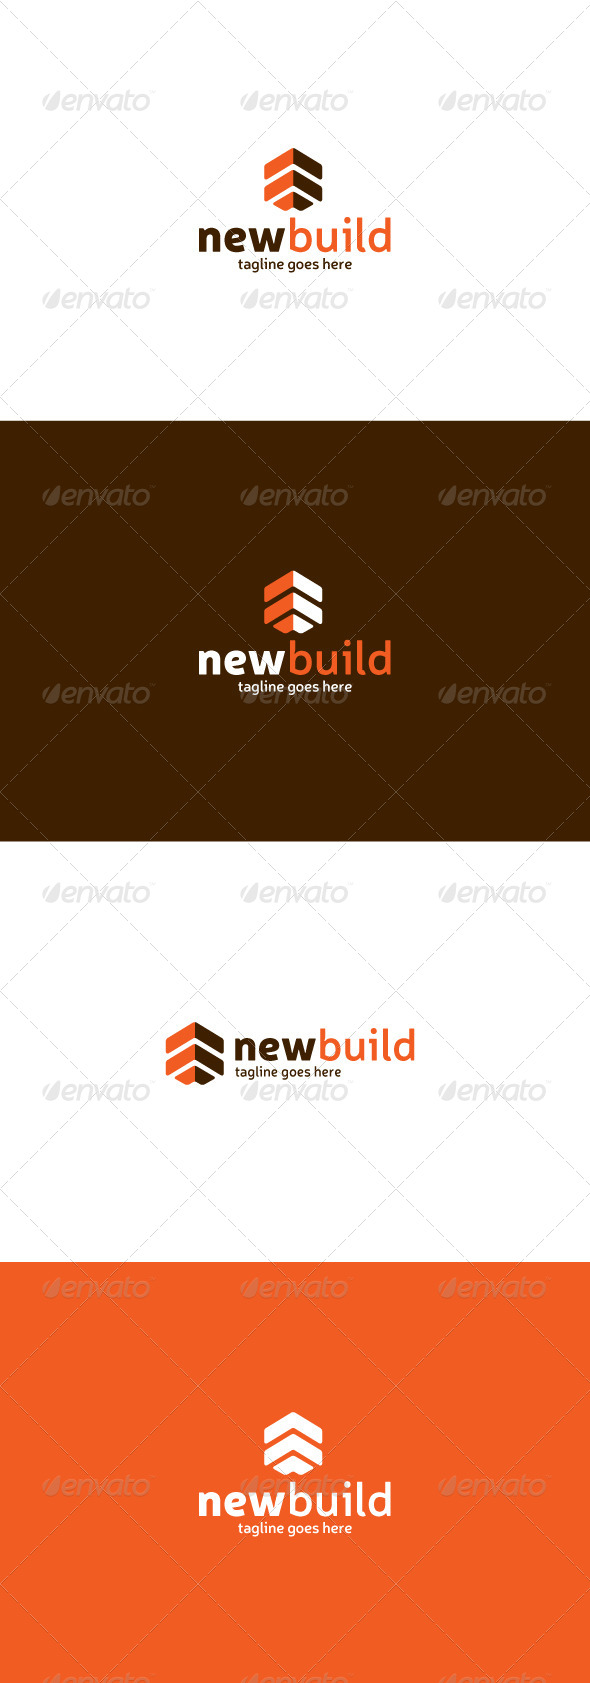 GraphicRiver New Build Logo 8406071